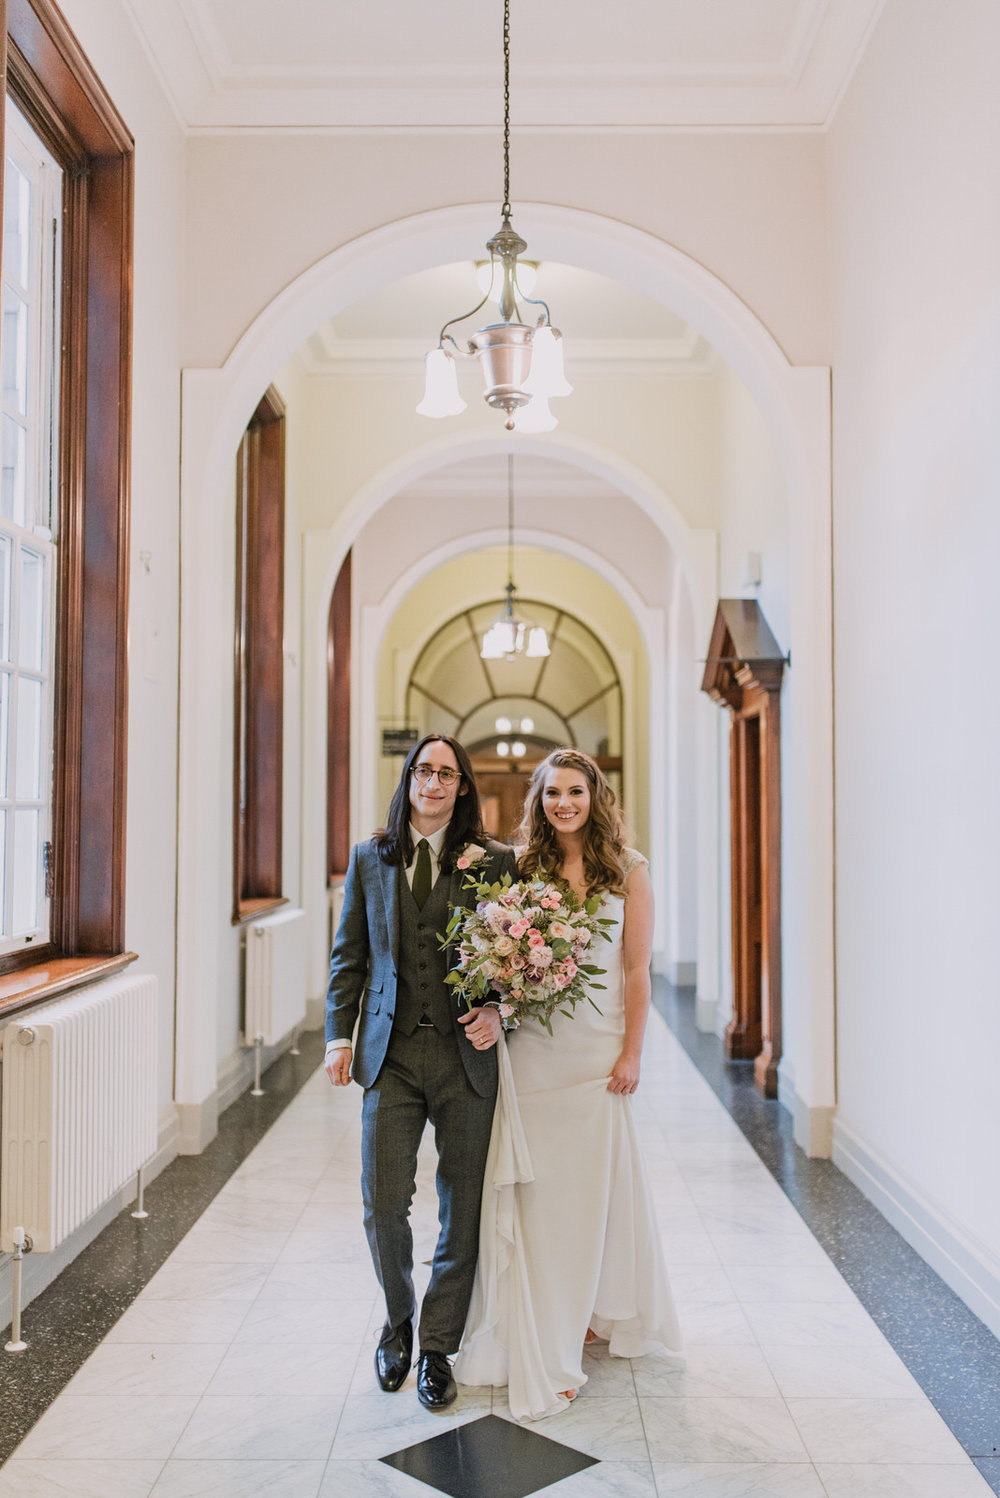 Belfast City Hall Wedding Photographer20.jpg